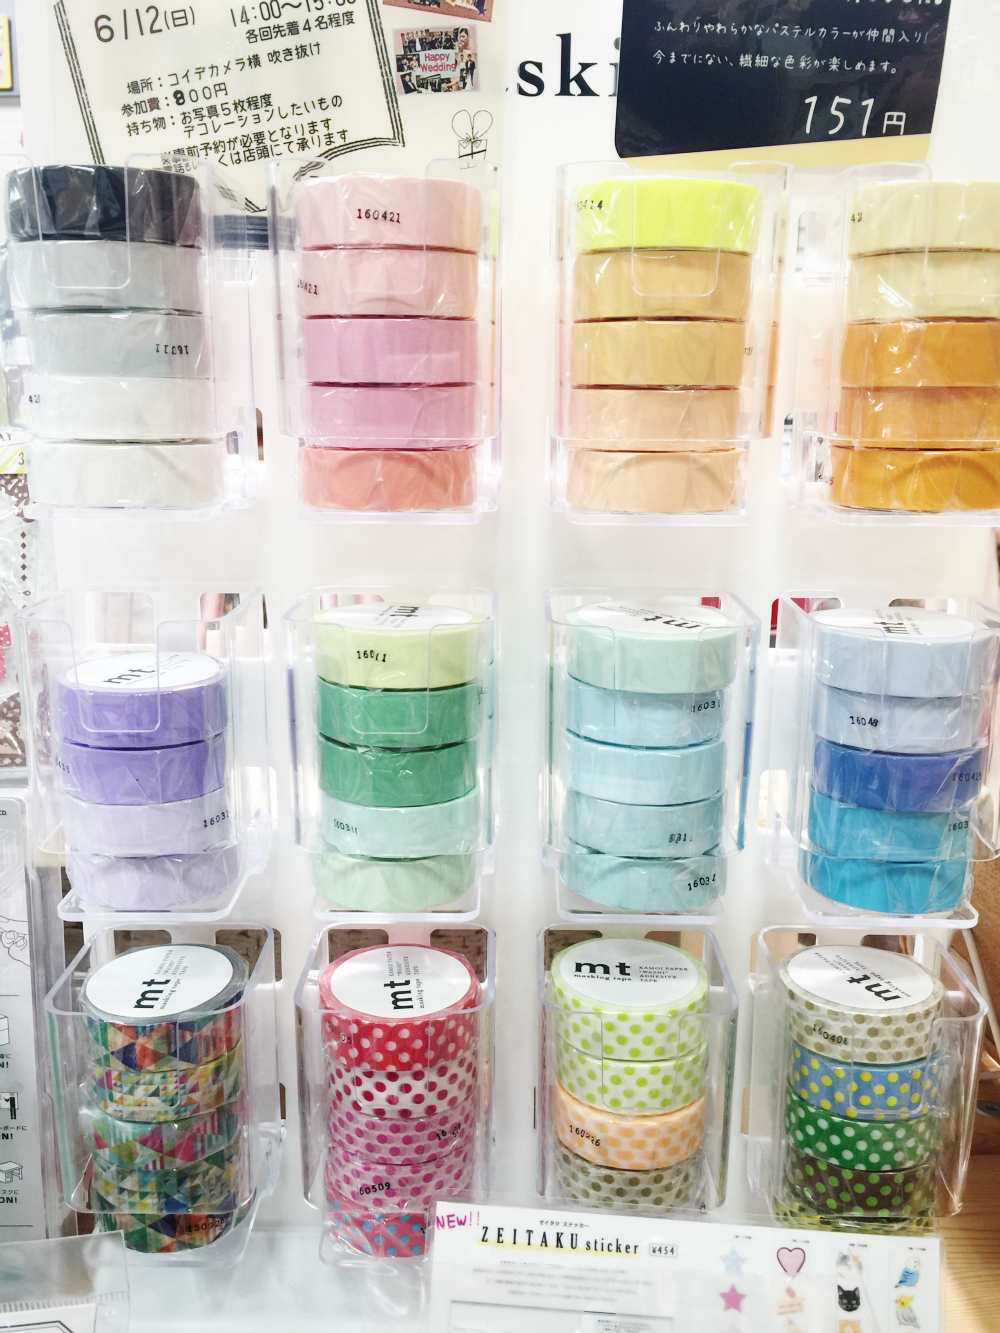 kawaii-japanese-tokyo-stationery-craft-store-guide-4